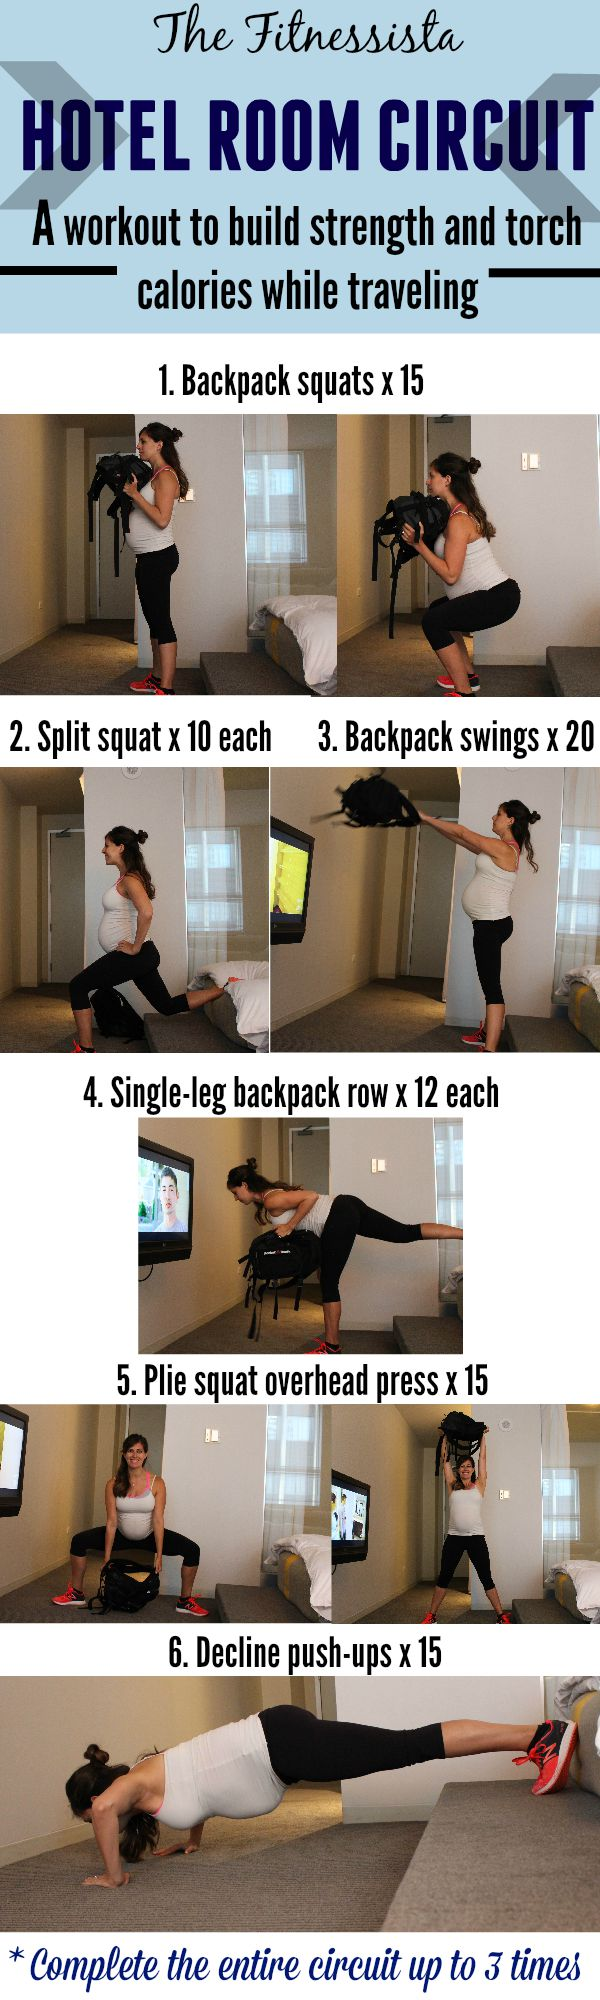 Hotel room circuit workout -- all you need is a backpack to stay fit on vacation! fitnessista.com